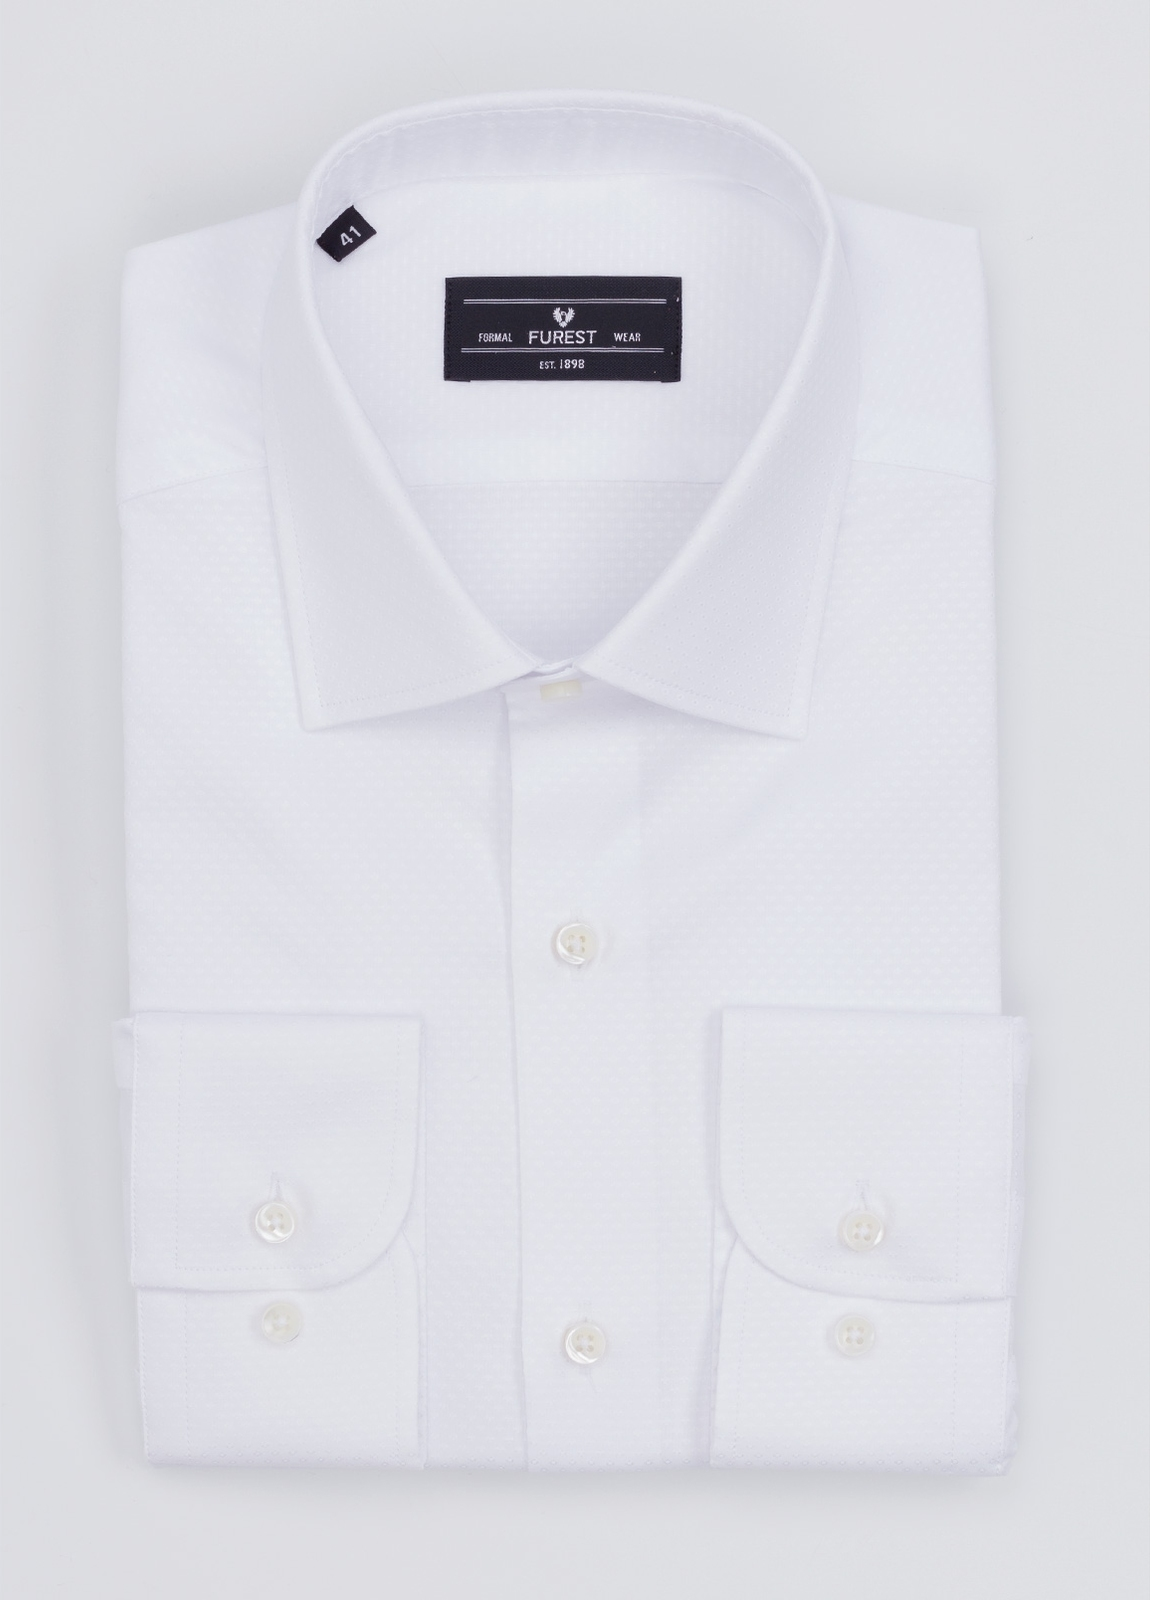 Camisa Formal Wear SLIM FIT cuello italiano modelo ROMA micrograbado color blanco. 100% Algodón.